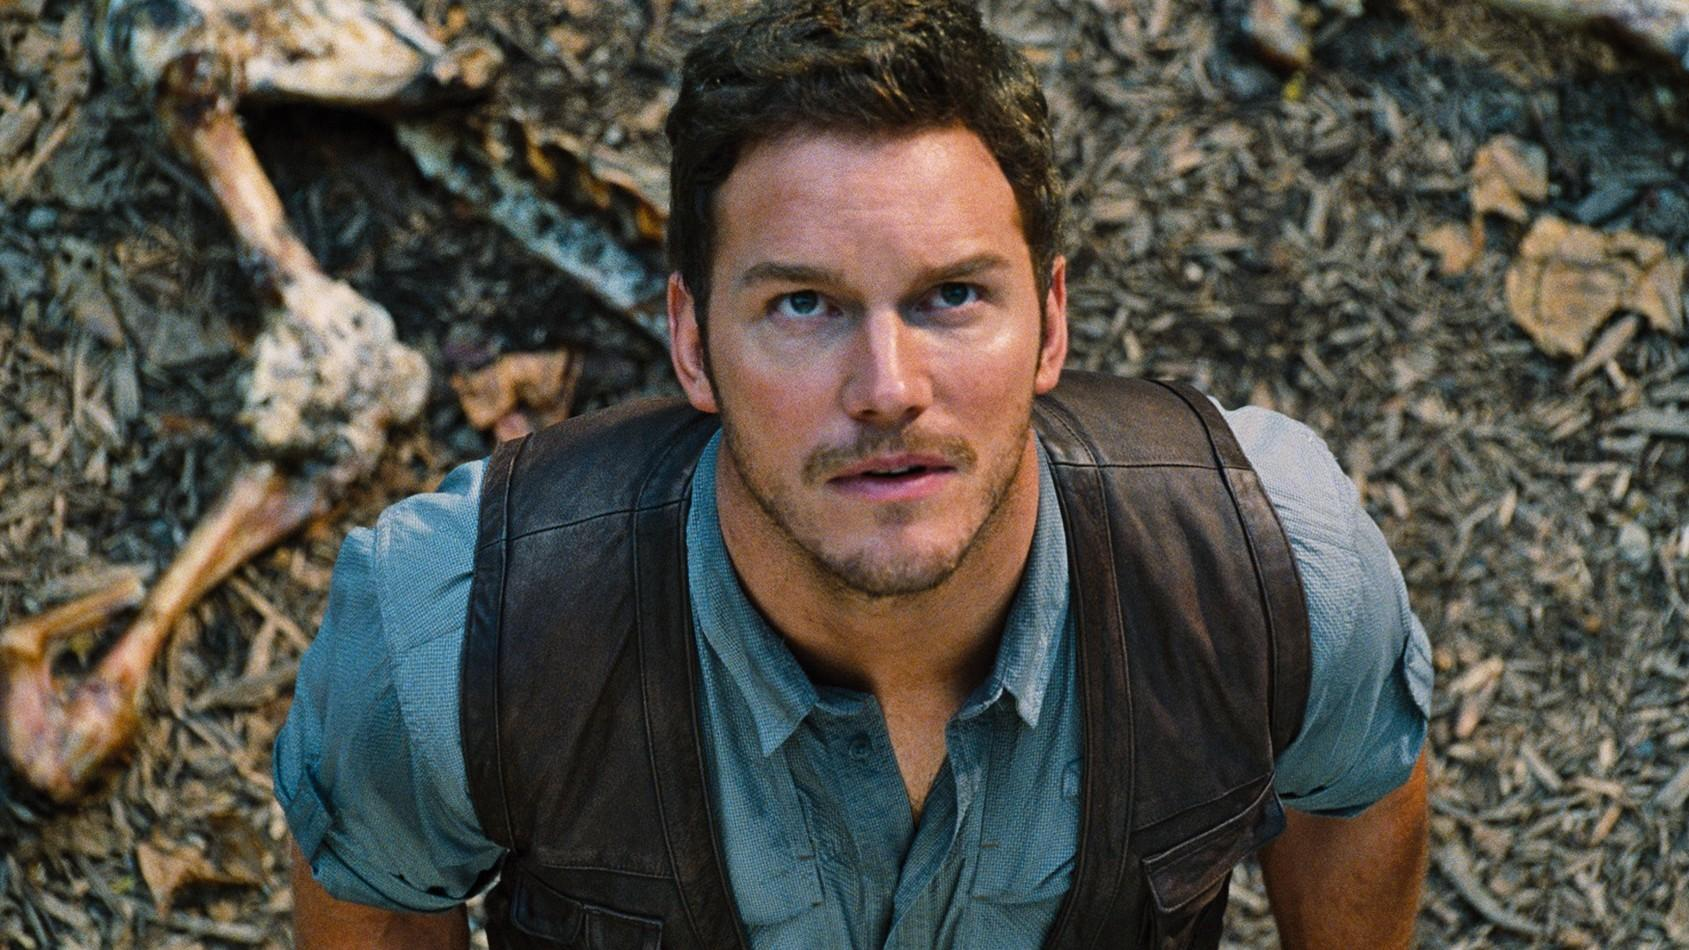 new thriller looking at Chris Pratt